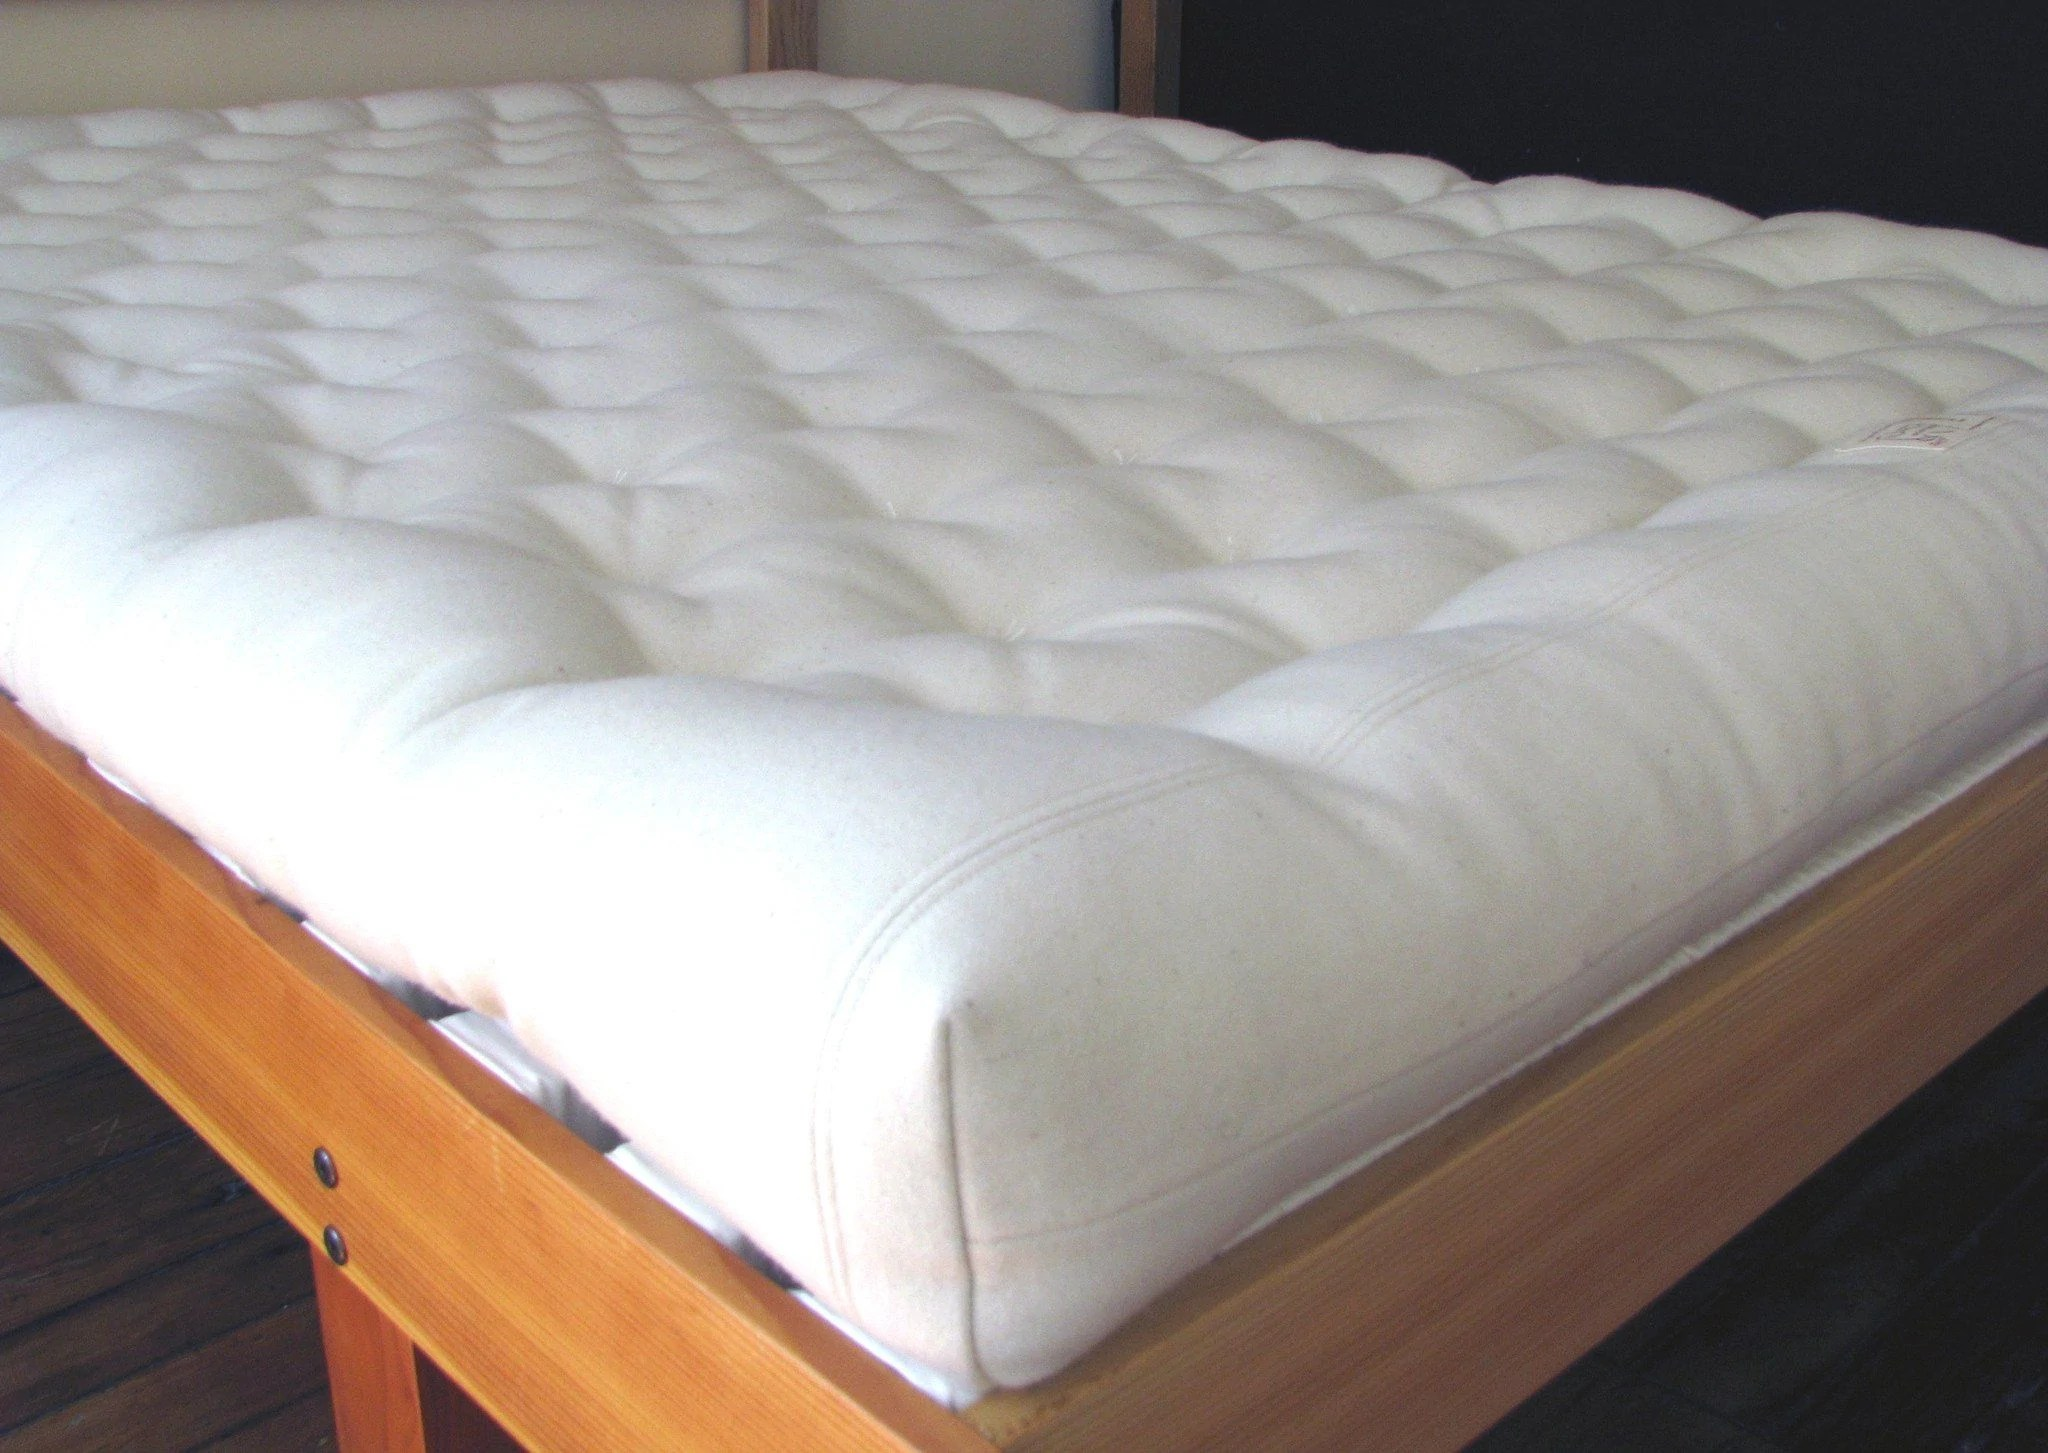 All Wool Natural Mattress Organic Woolen Mattress Green